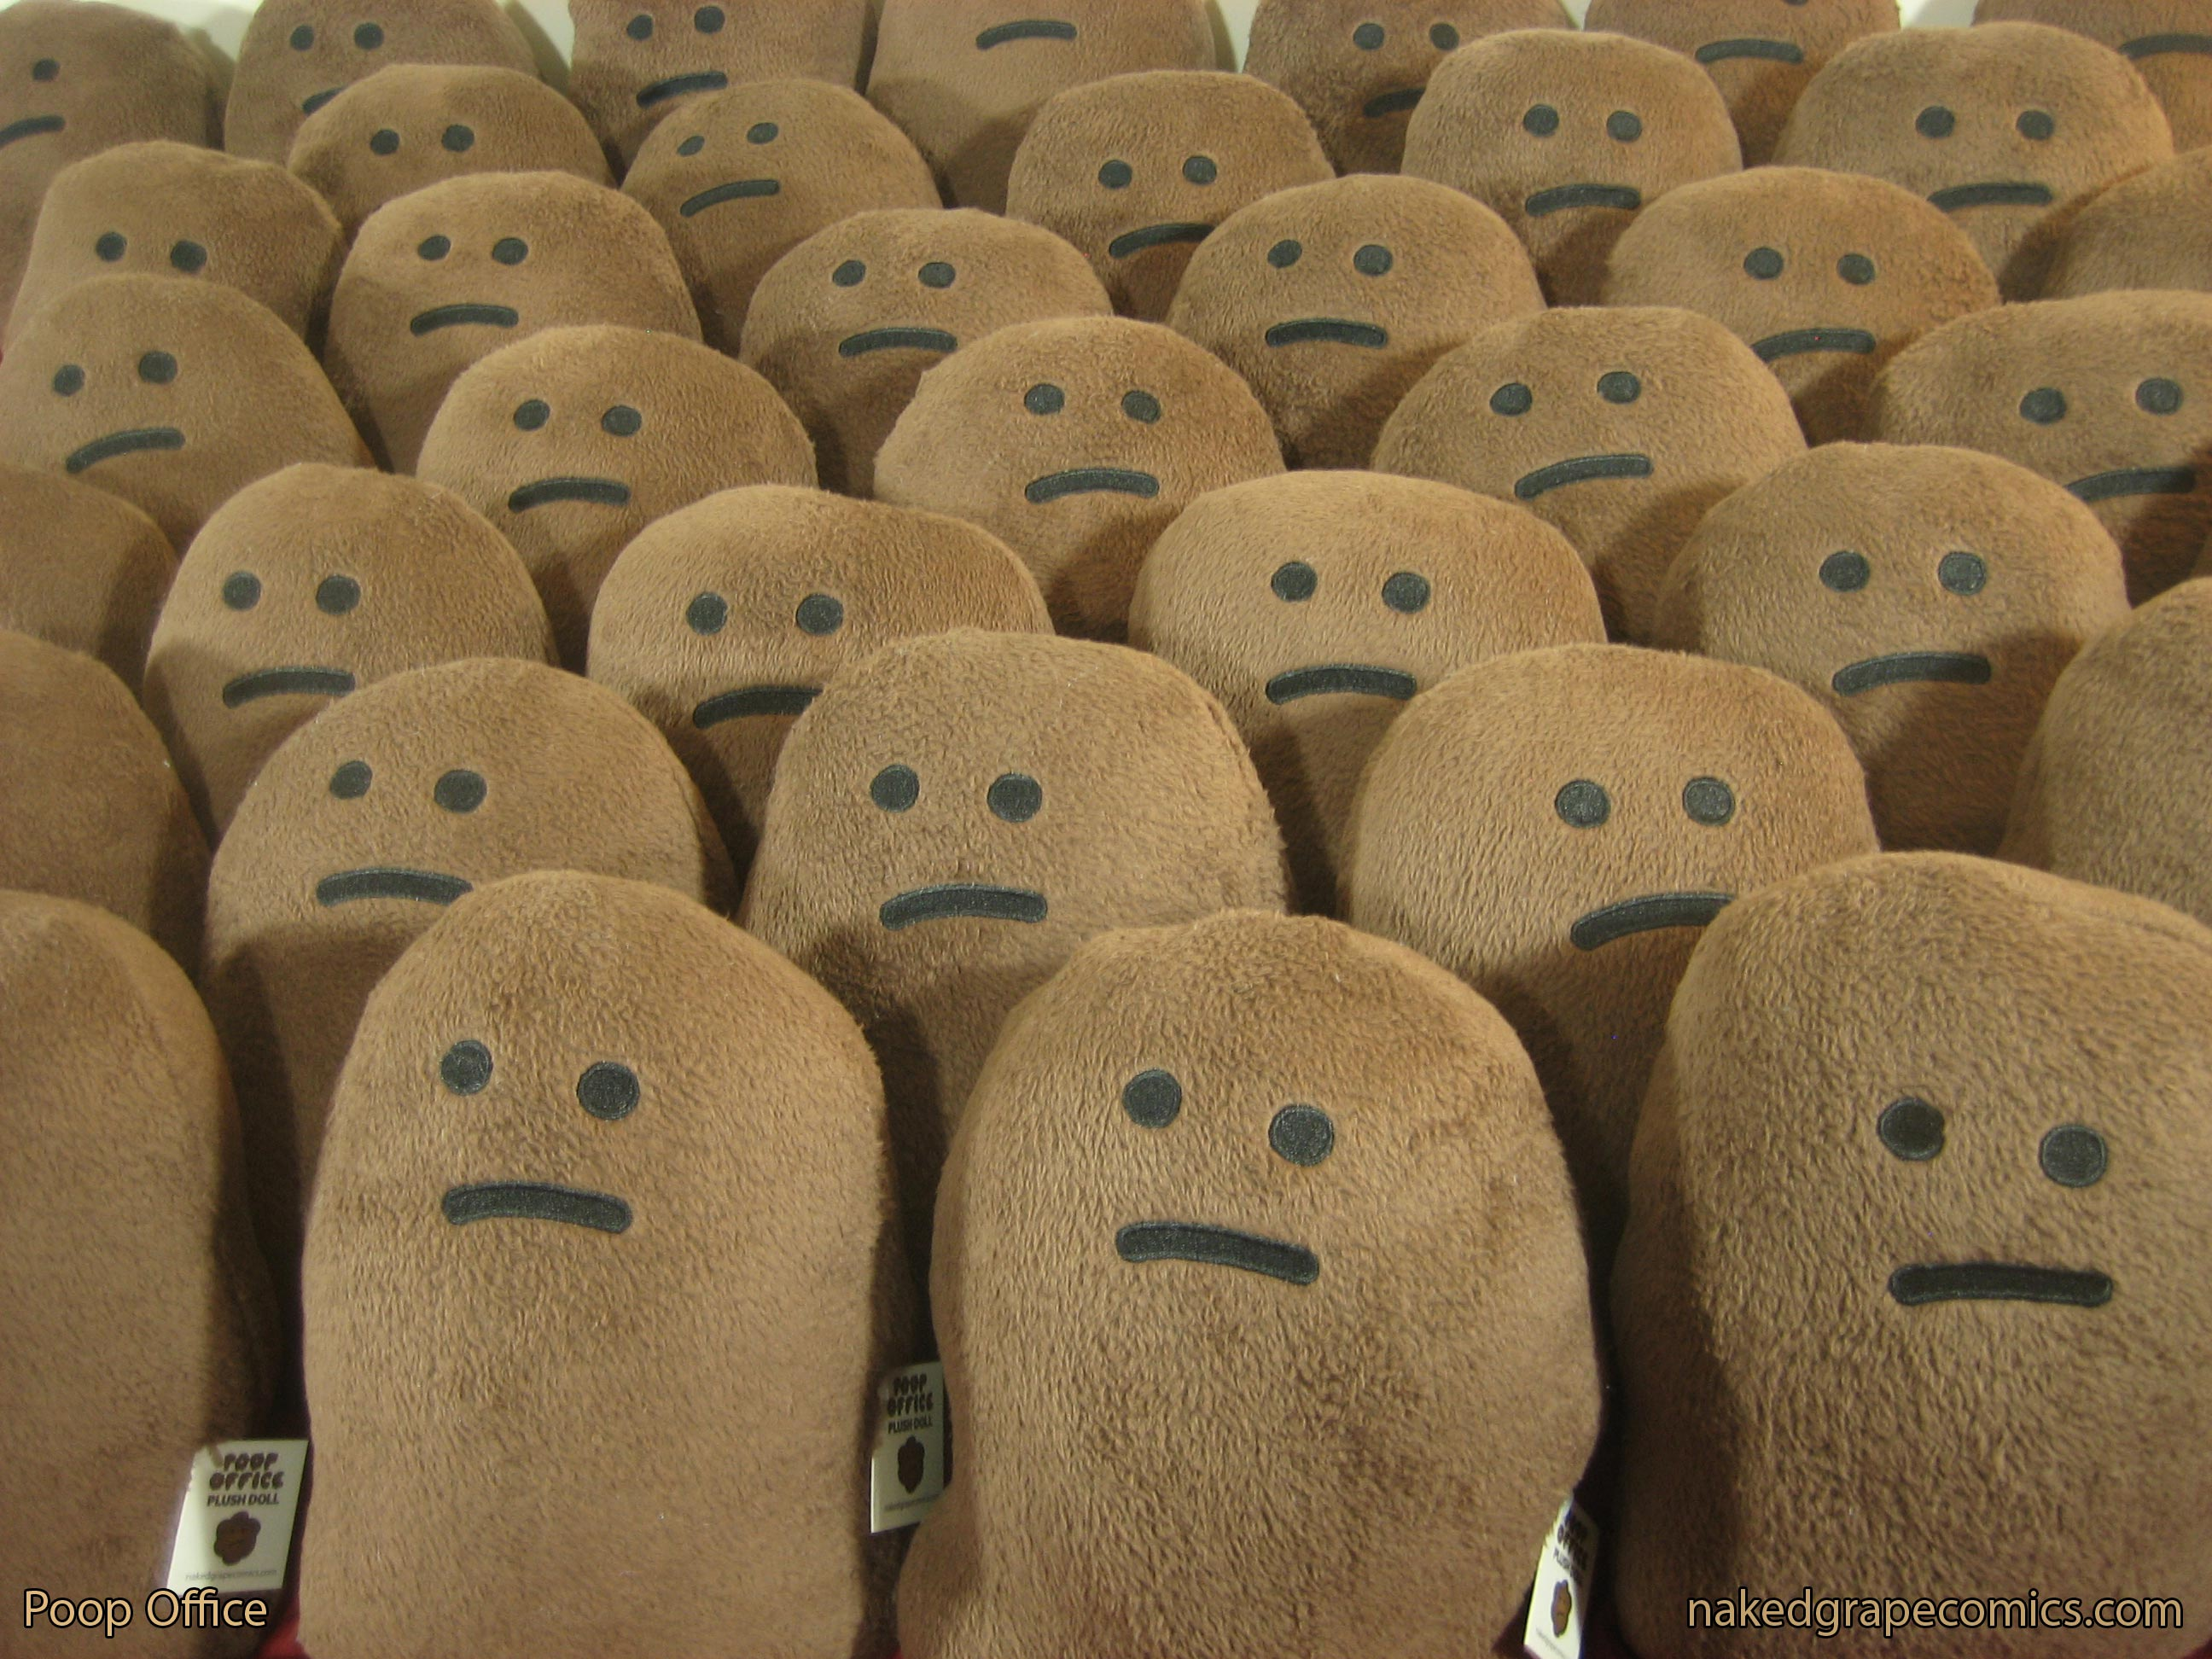 Poops in a crowd